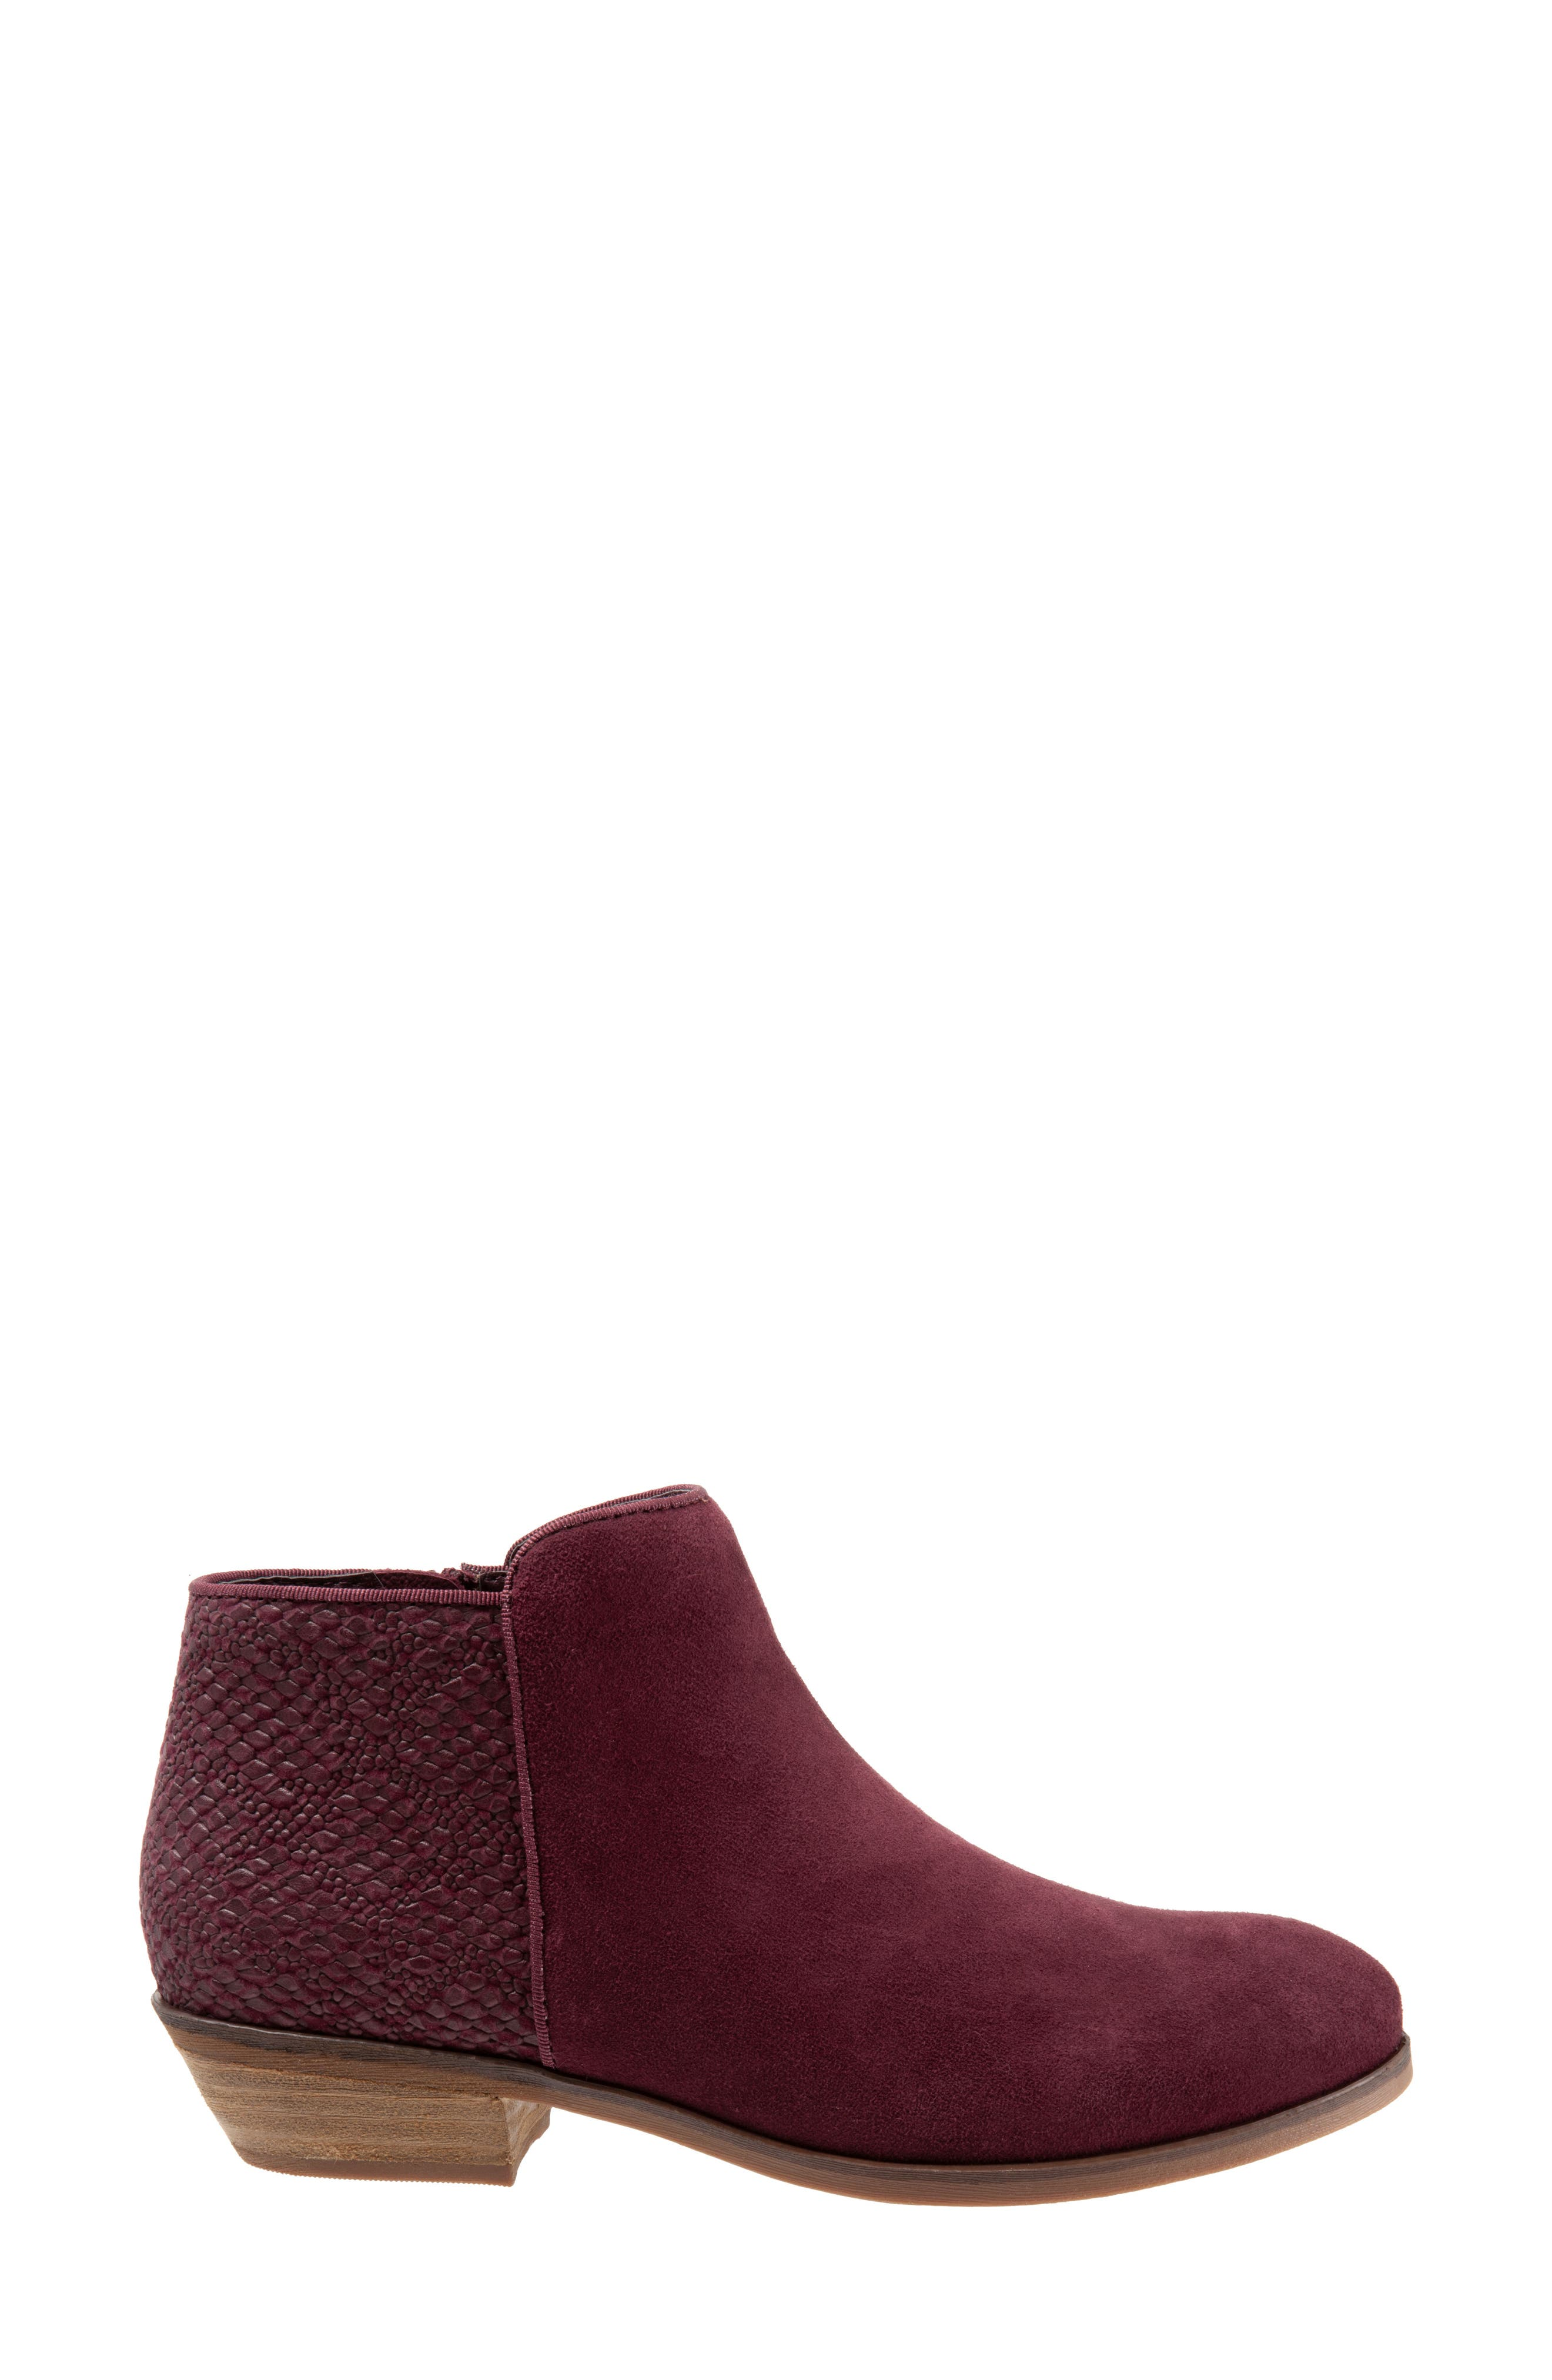 'Rocklin' Bootie,                             Alternate thumbnail 2, color,                             BURGUNDY LEATHER